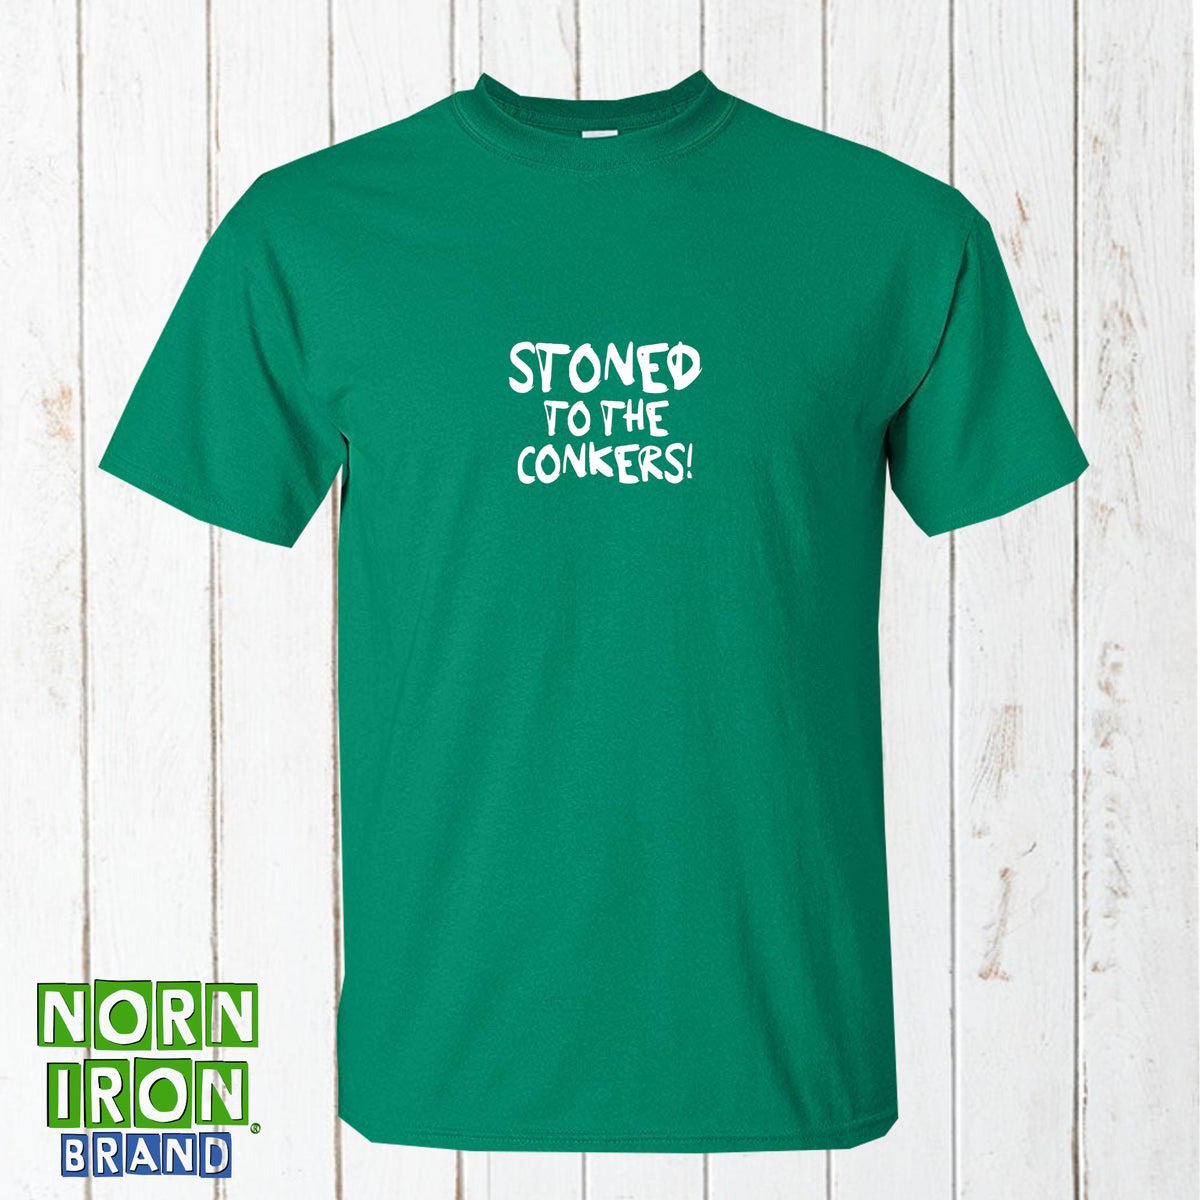 Stoned To The Conkers! T-Shirt